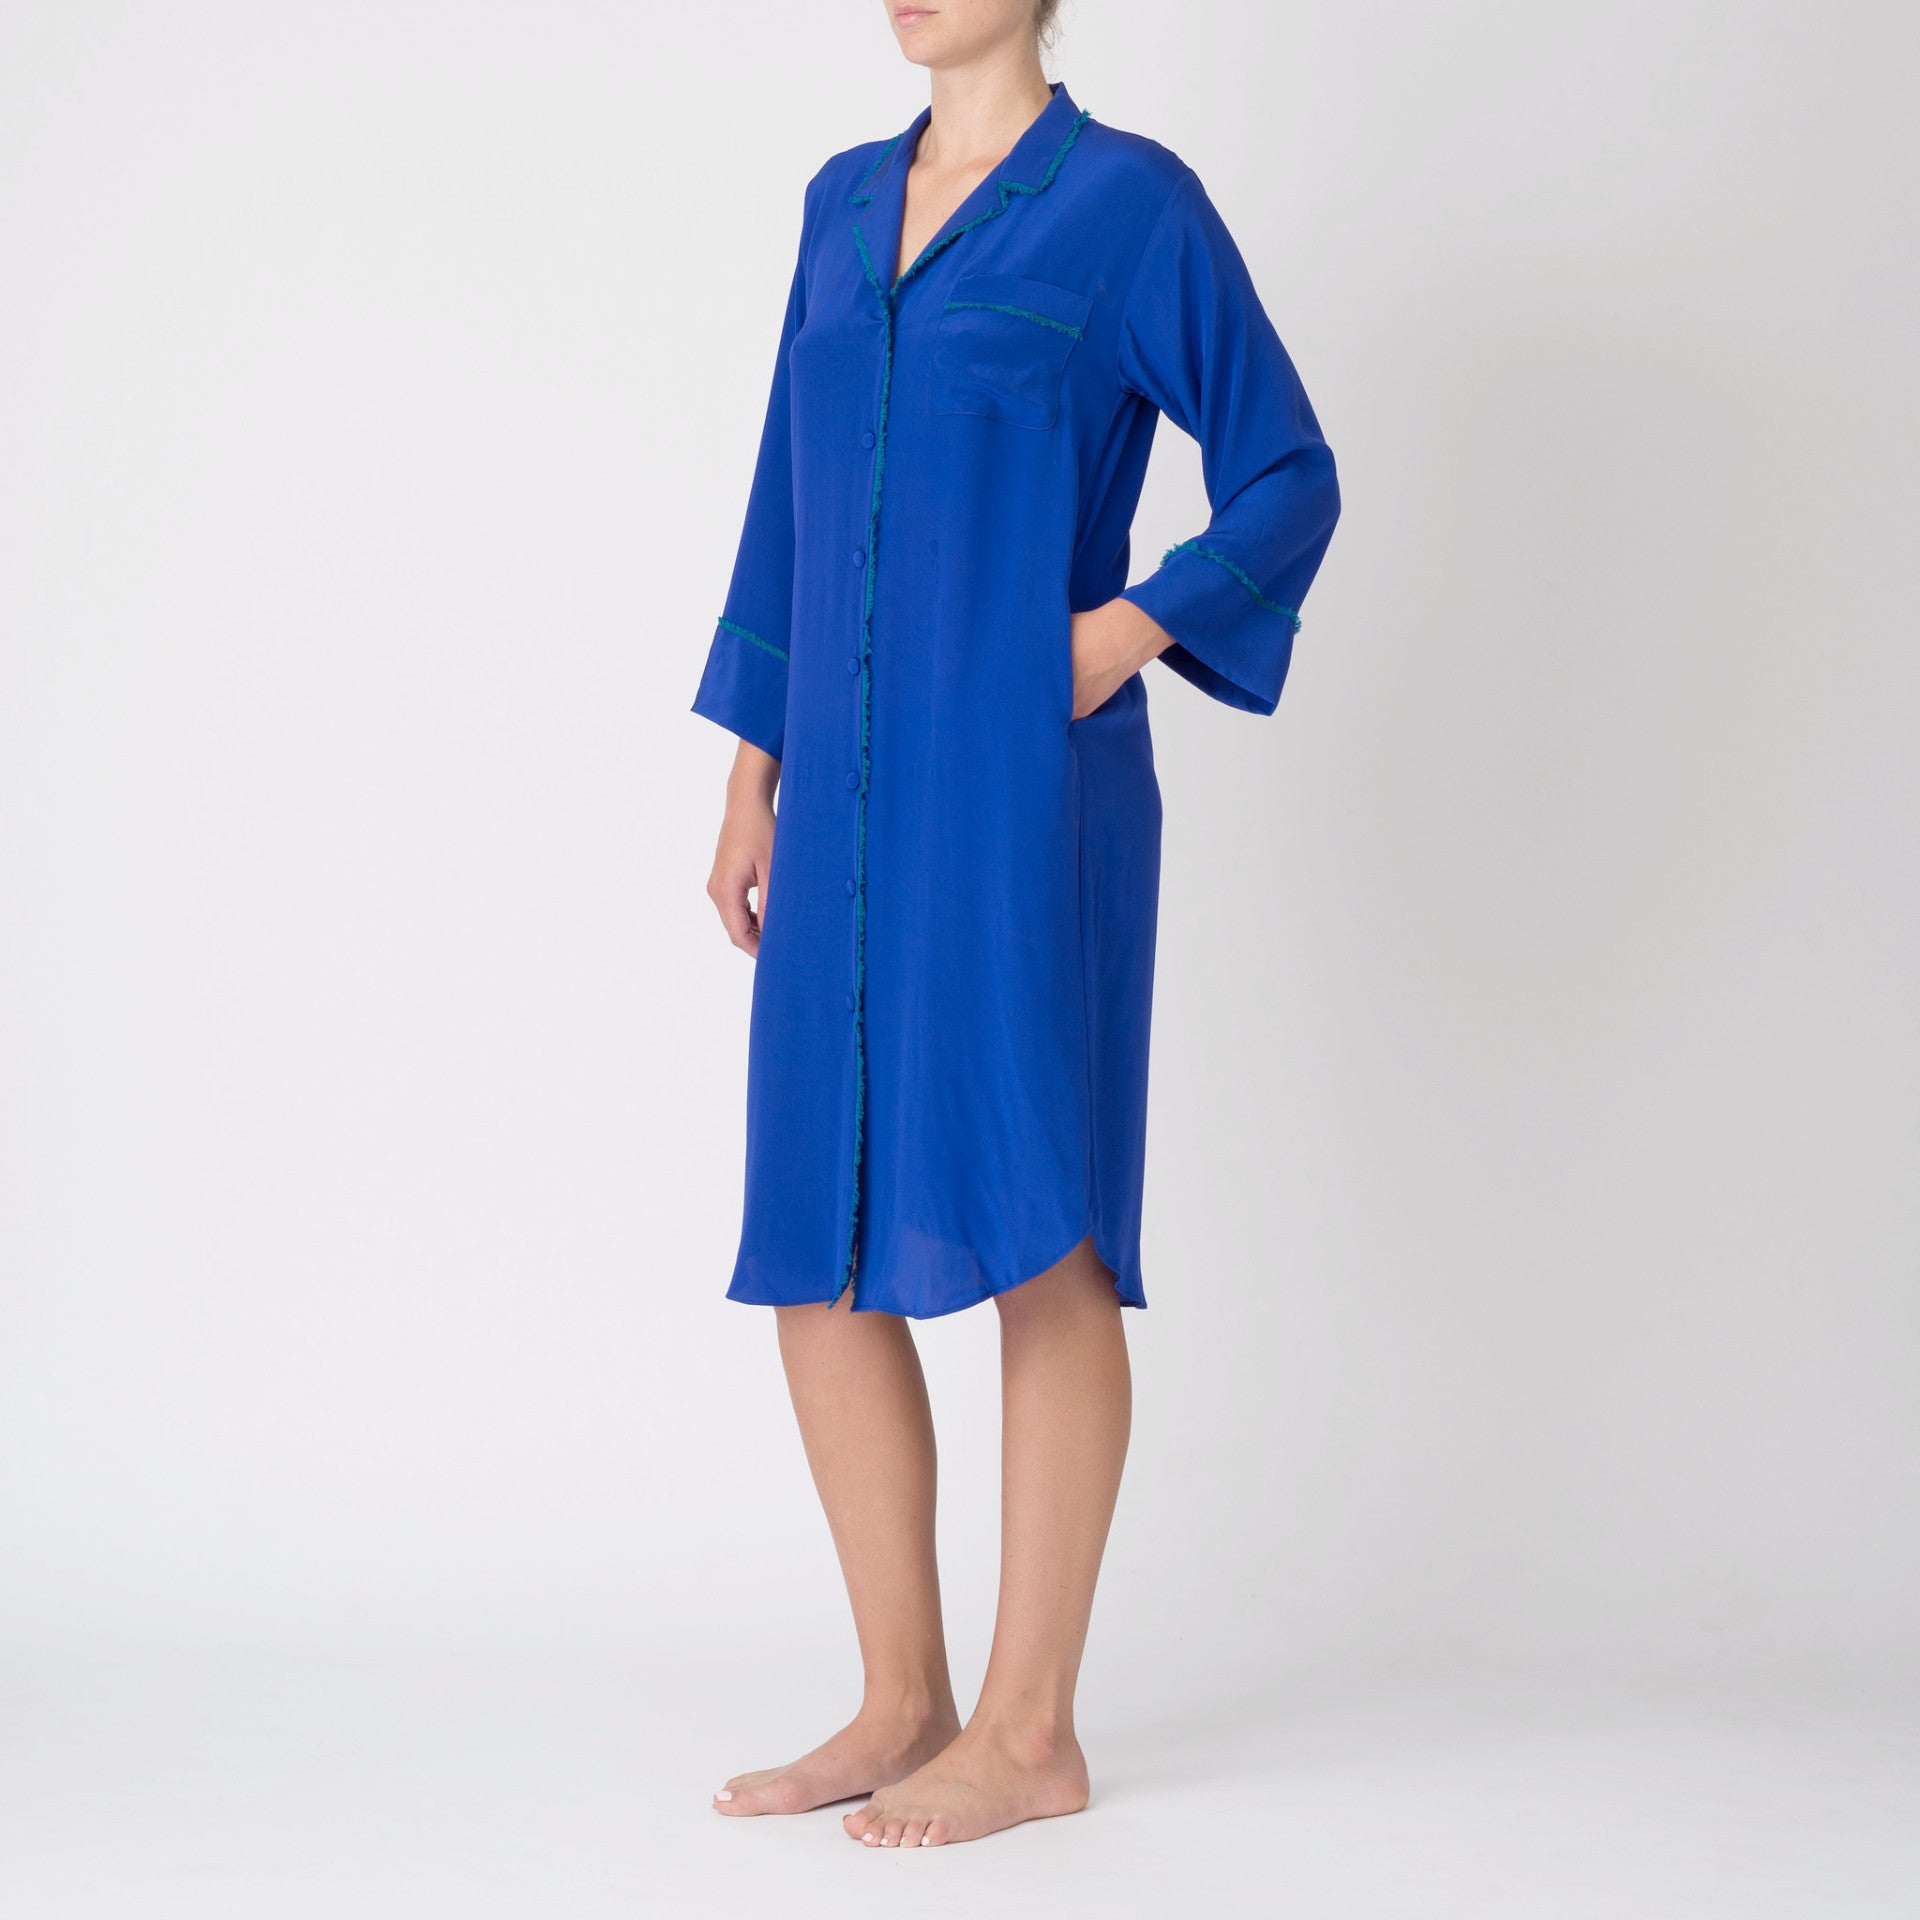 Georgia Nightshirt in Cobalt with Teal Fringe